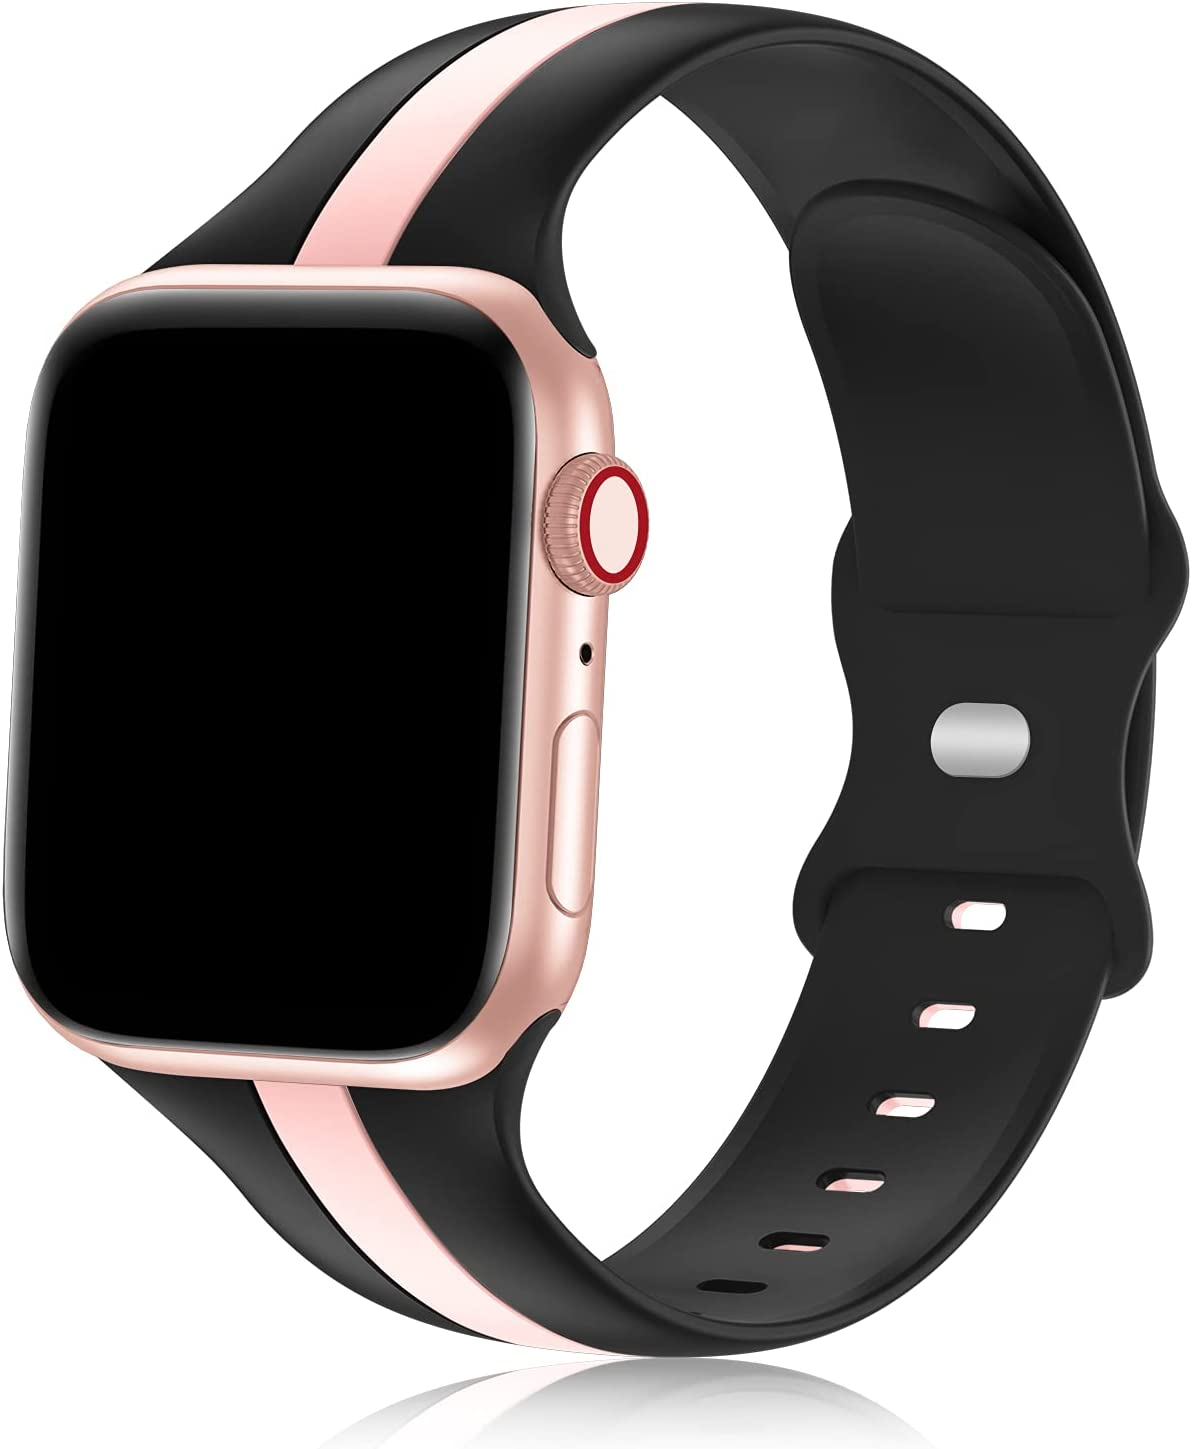 iWabcertoo Designer Sport Bands Compatible with Apple Watch Bands 38mm 40mm 41mm Women and Men,Soft Silicone Replacement Strap Bands for iWatch Series 7 6 5 4 3 2 1 SE Black Pink